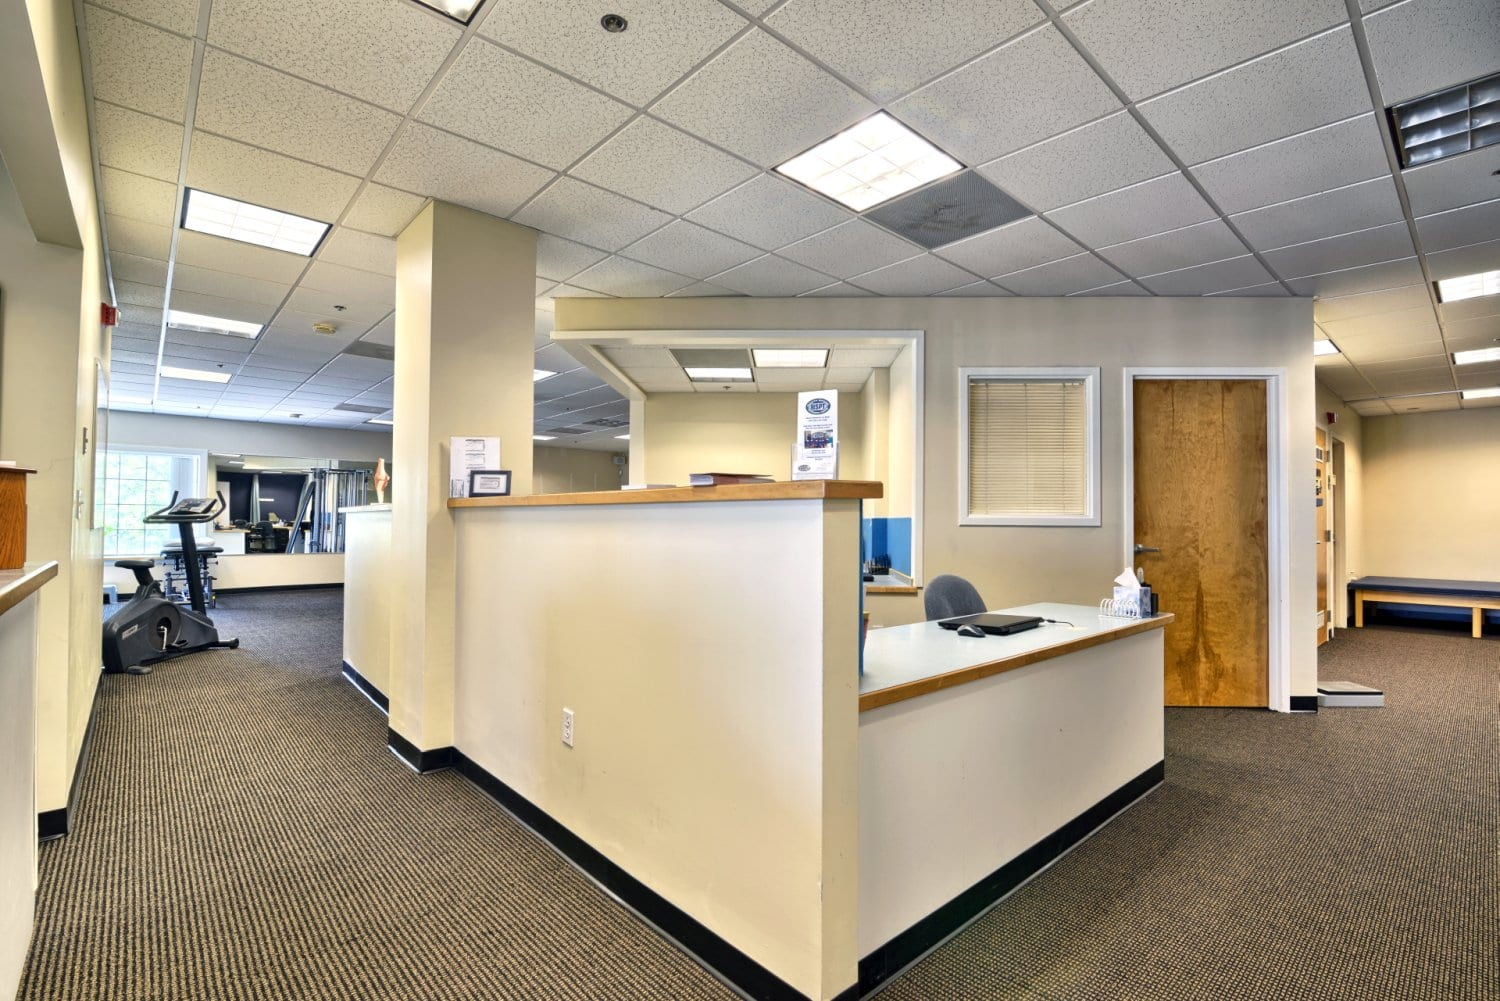 An image of the front desk at our physical therapy clinic in Salem, Massachusetts.